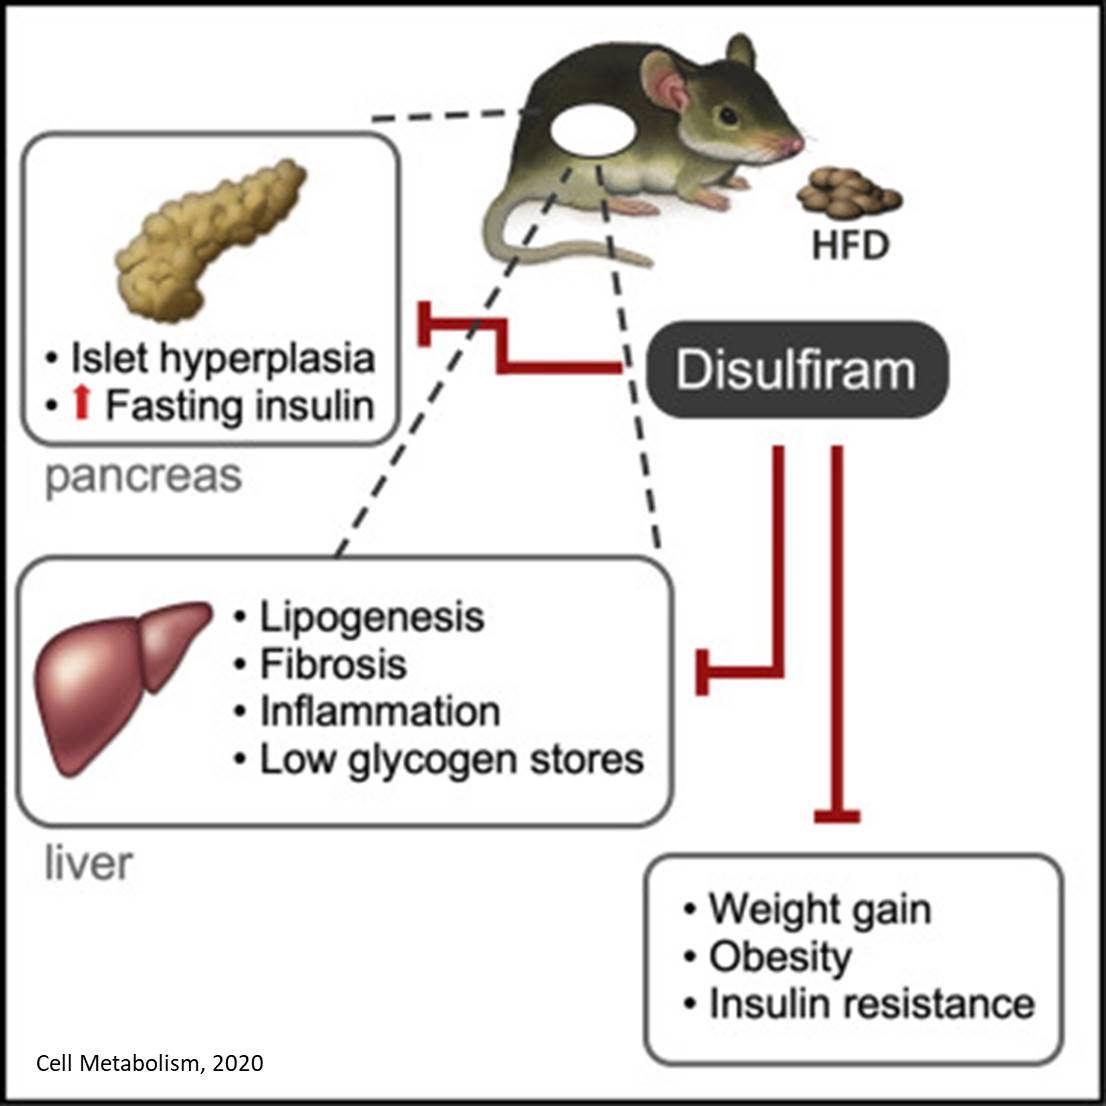 Alcohol treatment drug disulfiram helps obese mice lose weight, improve metabolic function